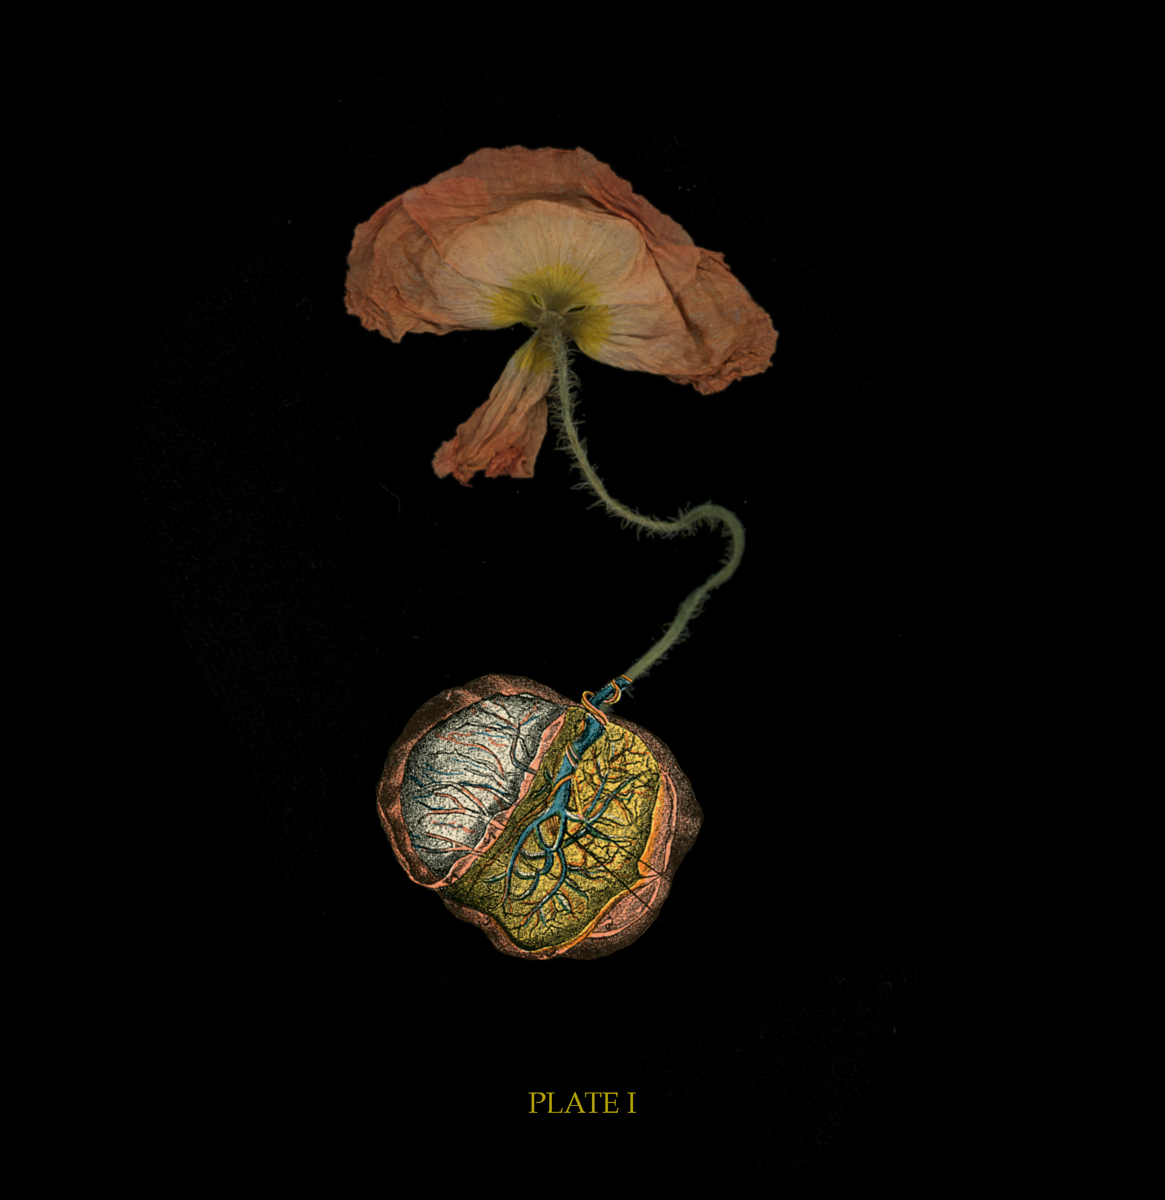 PLATE I: Placenta Poppy (large view)